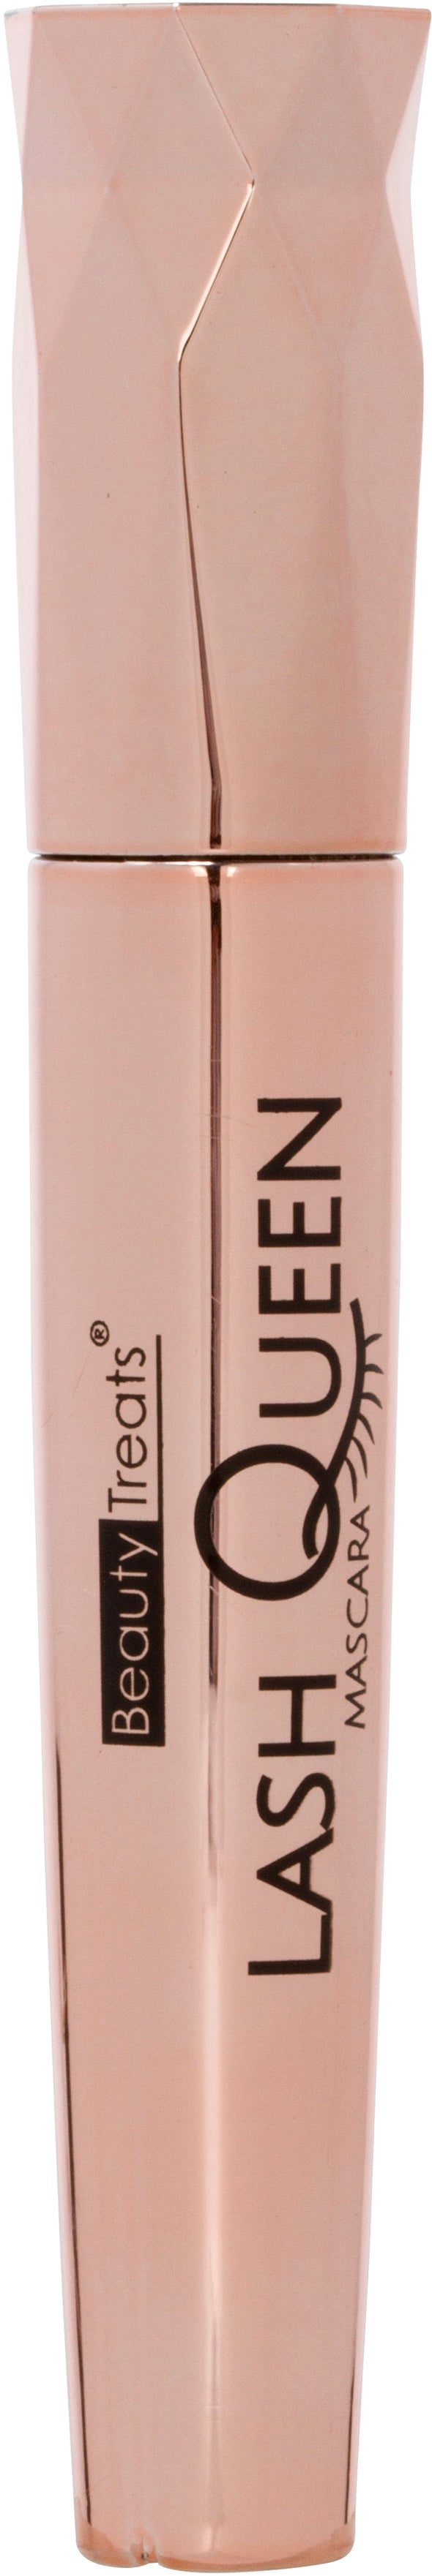 Lash Queen Mascara